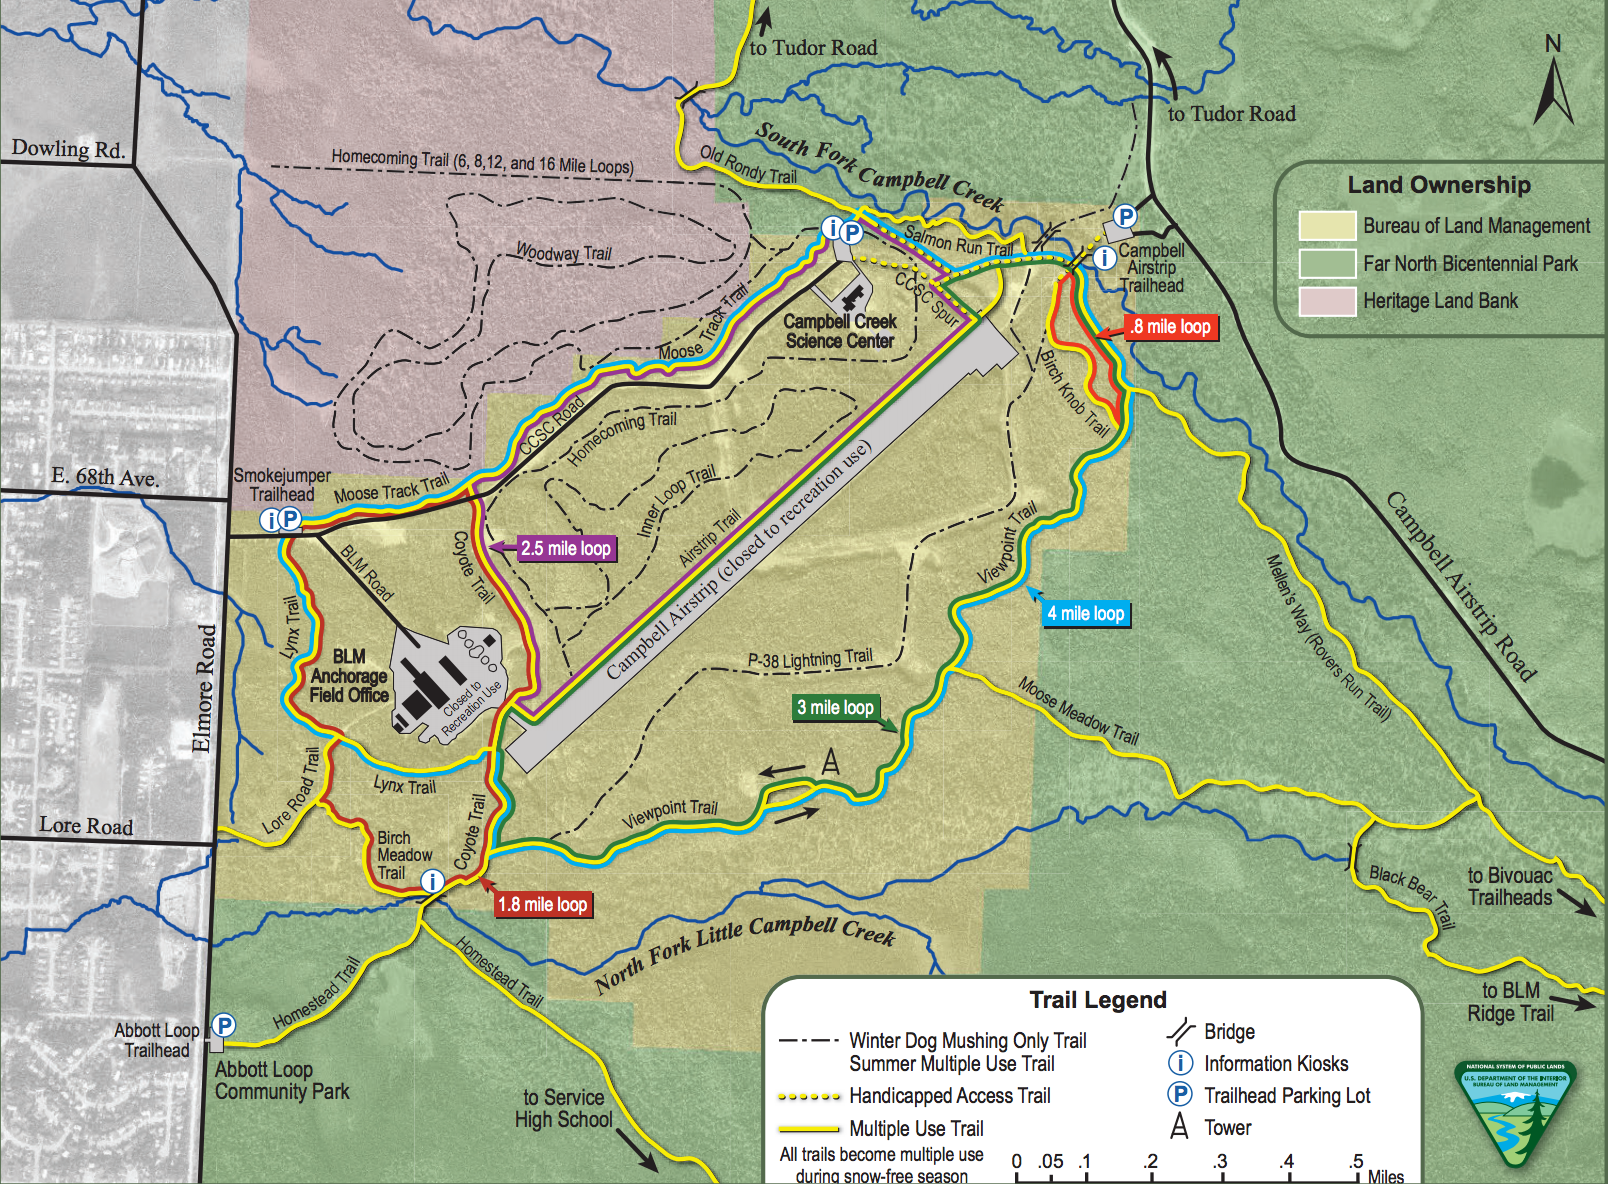 Burue of Land Management and Campbell Creek Science Center Trail system. Source: http://www.trailsofanchorage.com/Maps/CTTrailMap.pdf